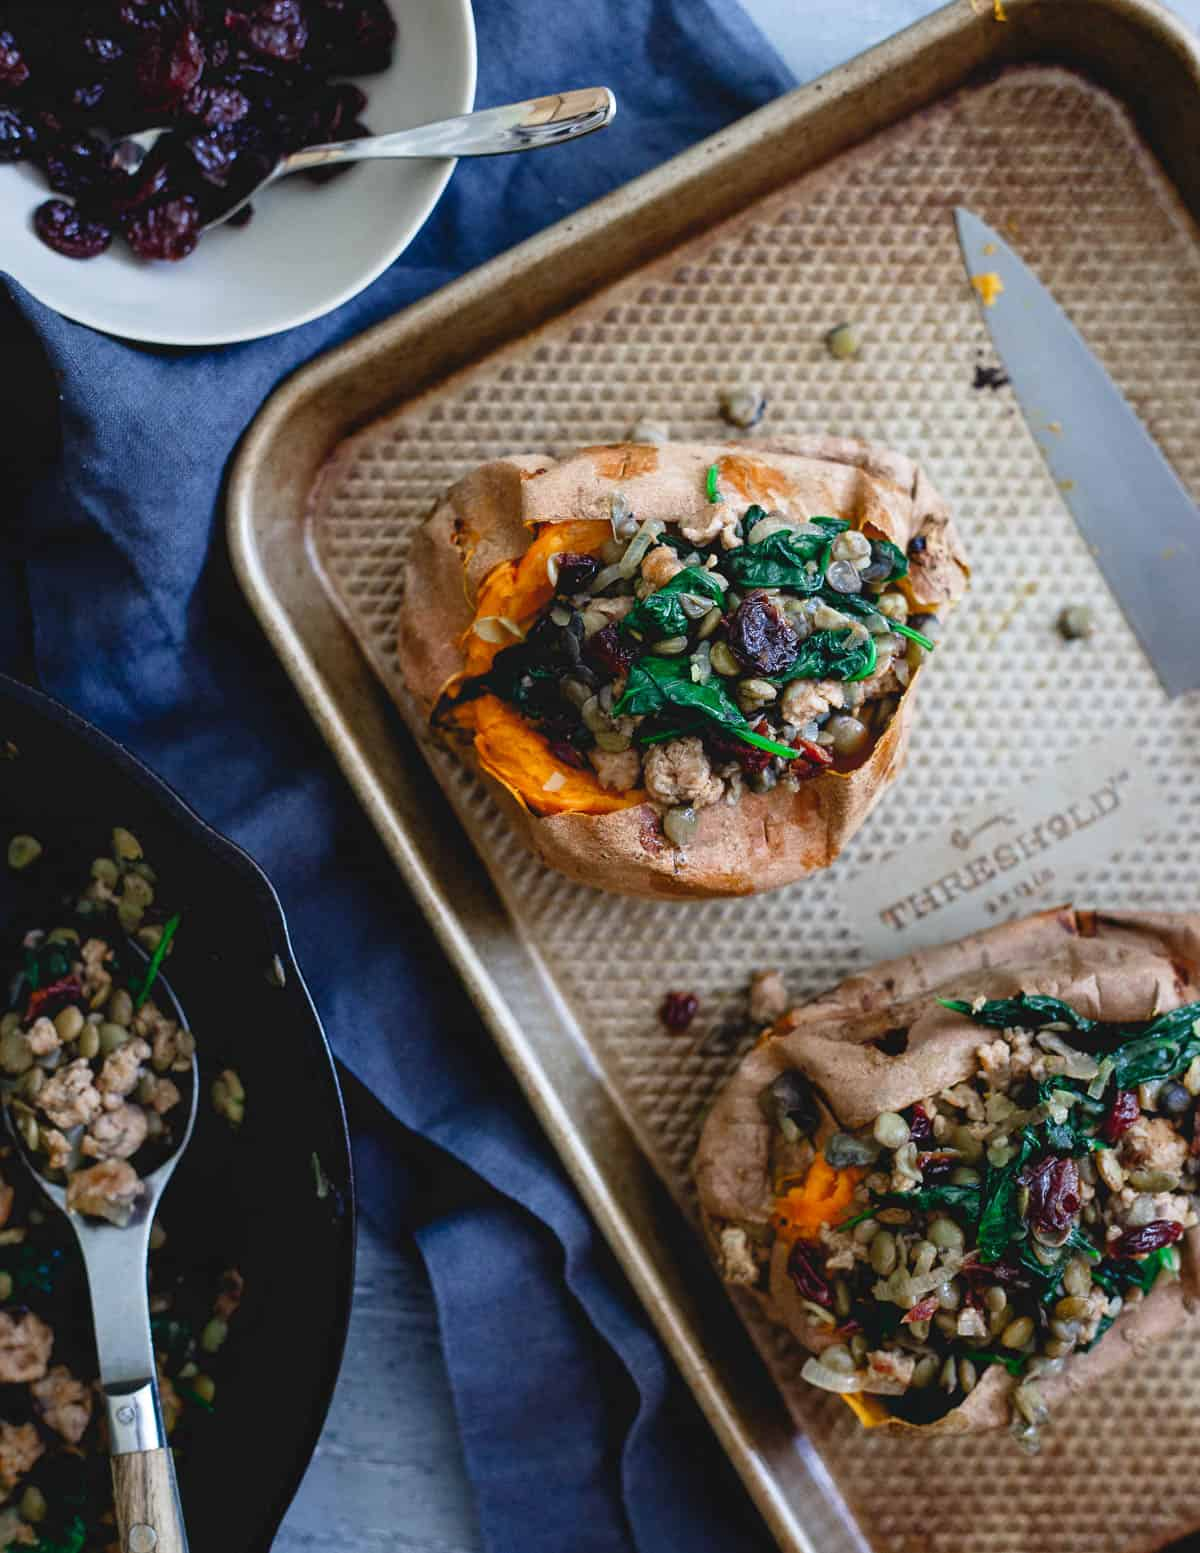 These stuffed sweet potatoes are filled with hot Italian turkey sausage, lentils, tart cherries and spinach. A wholesome way to welcome in the fall season.